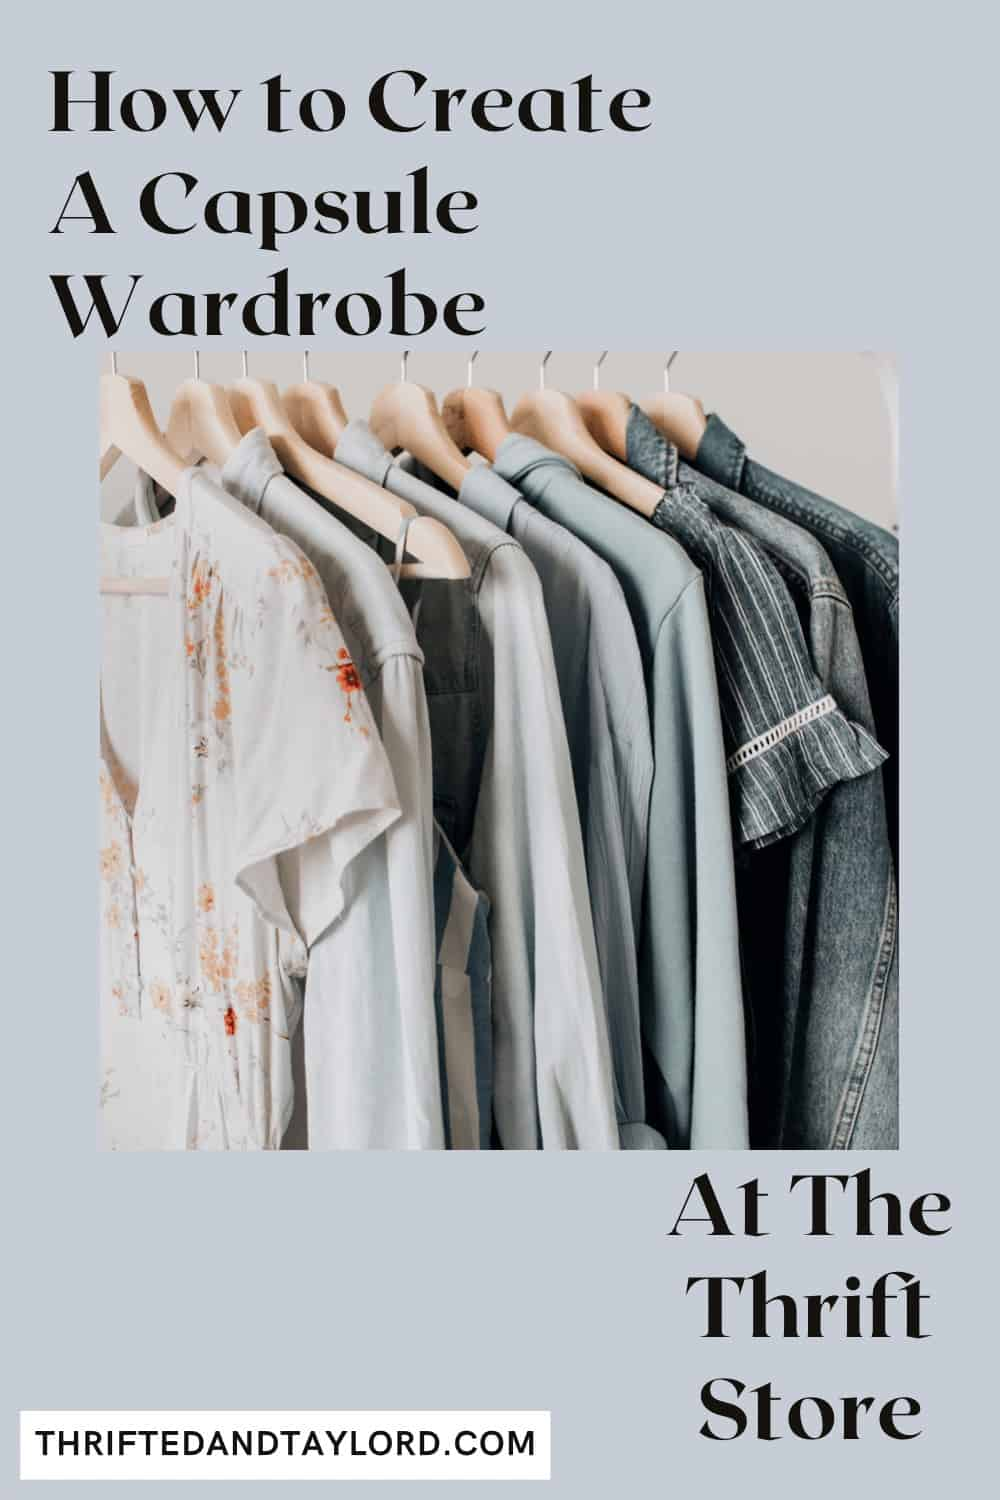 How To Create A Capsule Wardrobe At The Thrift Store